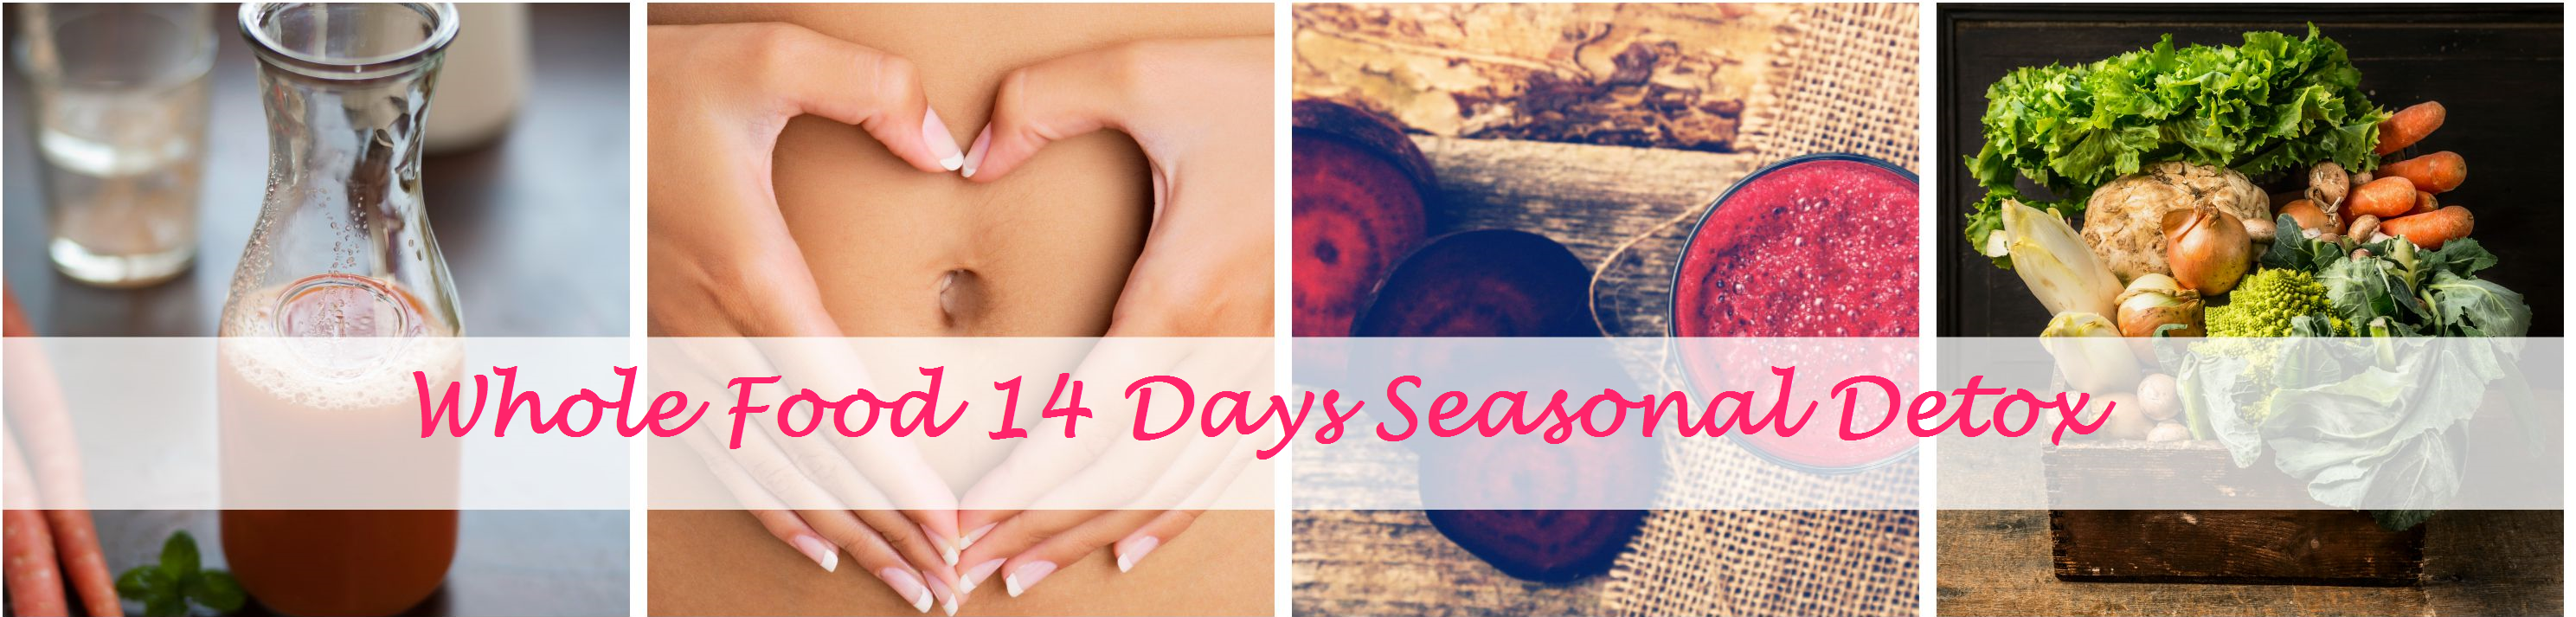 banner-14-days-whole-food-detox2